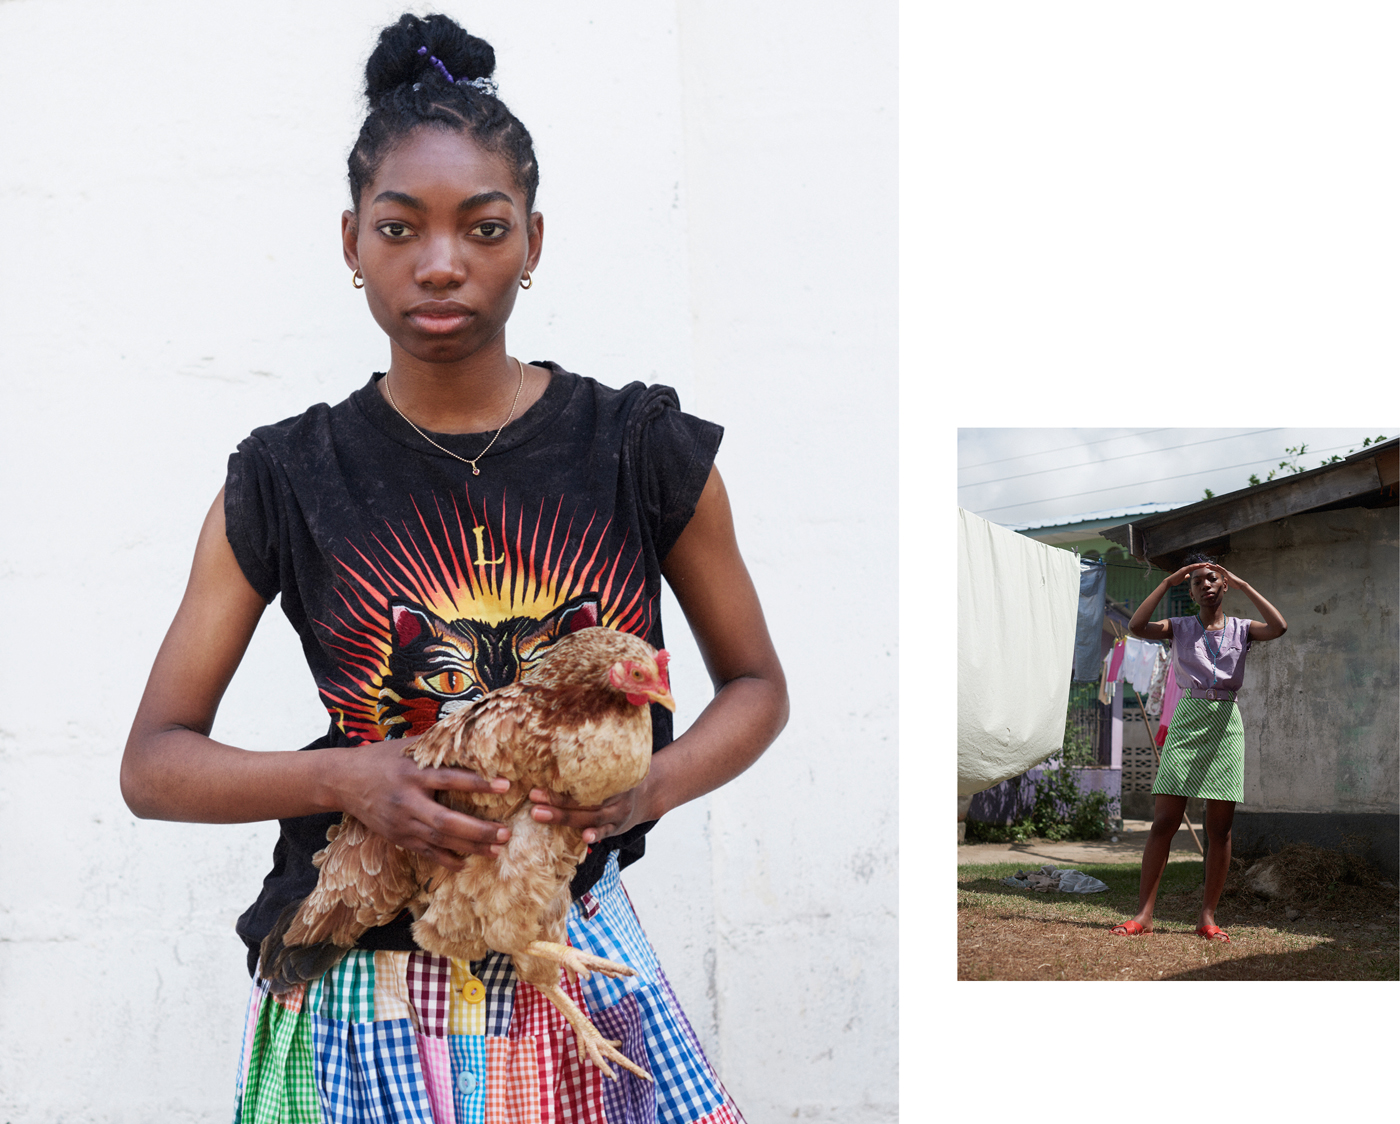 Left: T-shirt by Gucci. Traditional Garifuna skirt.Right: Traditional Garifuna top and belt. Skirt by Carven. All sandals throughout from local market.